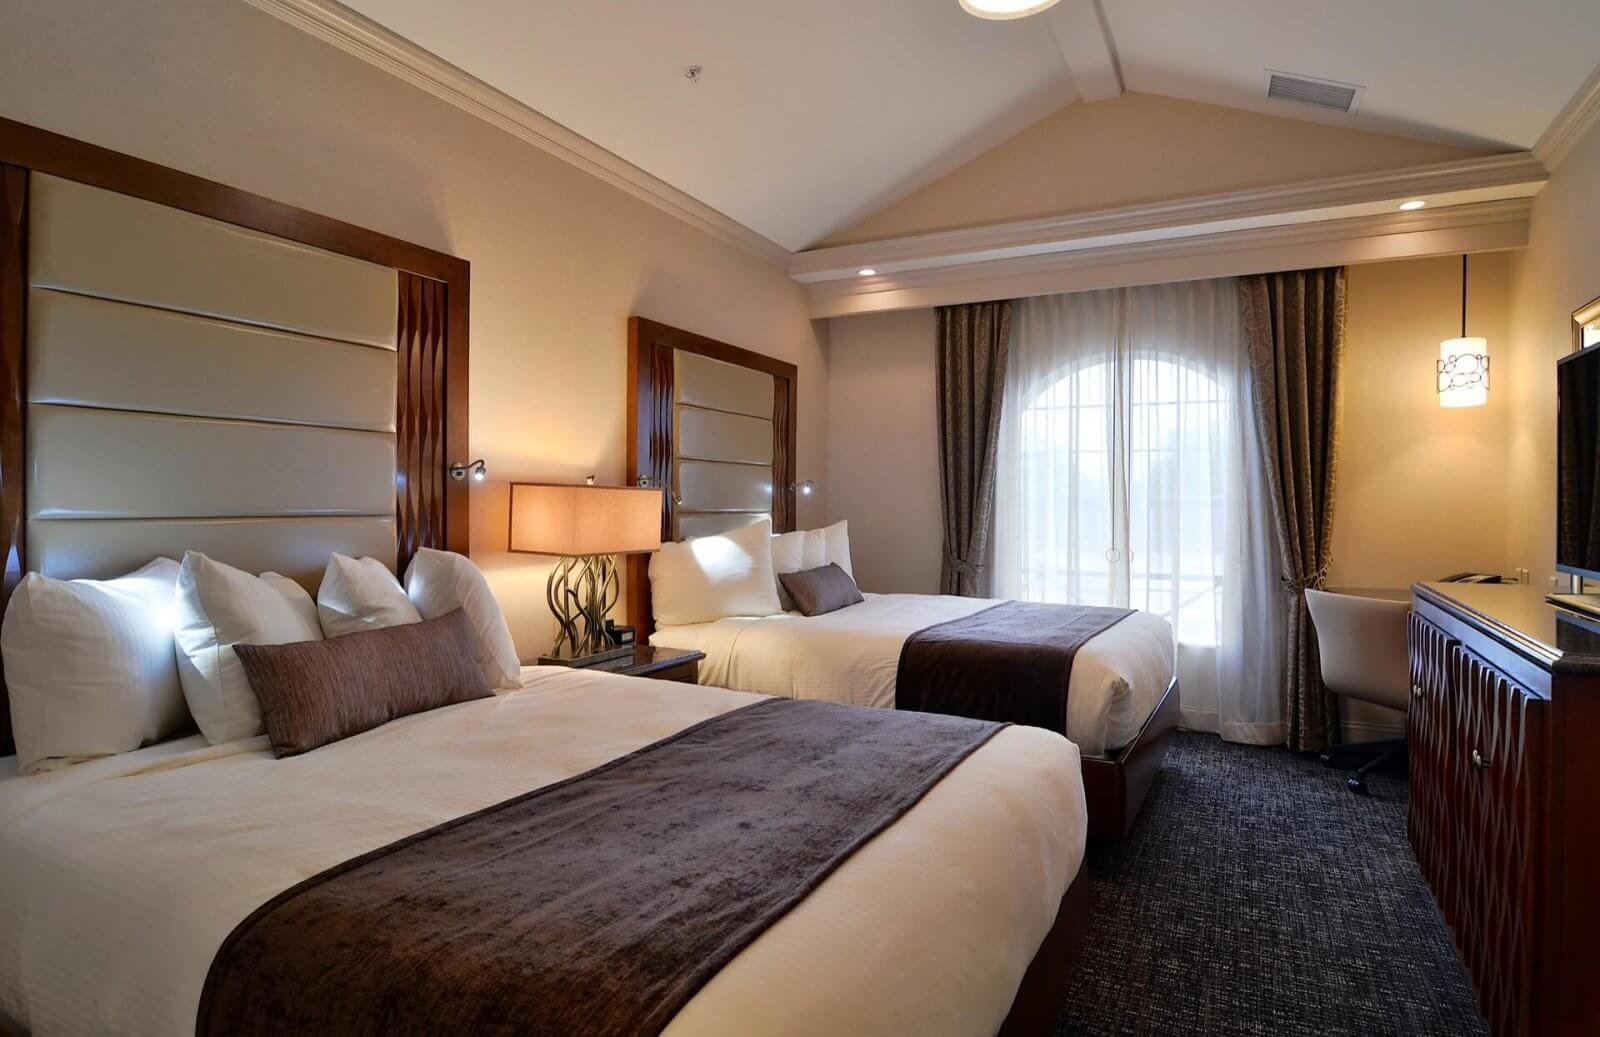 Best Hotel Suites In Lancaster Pa Hotels With 2 Rooms With Pictures